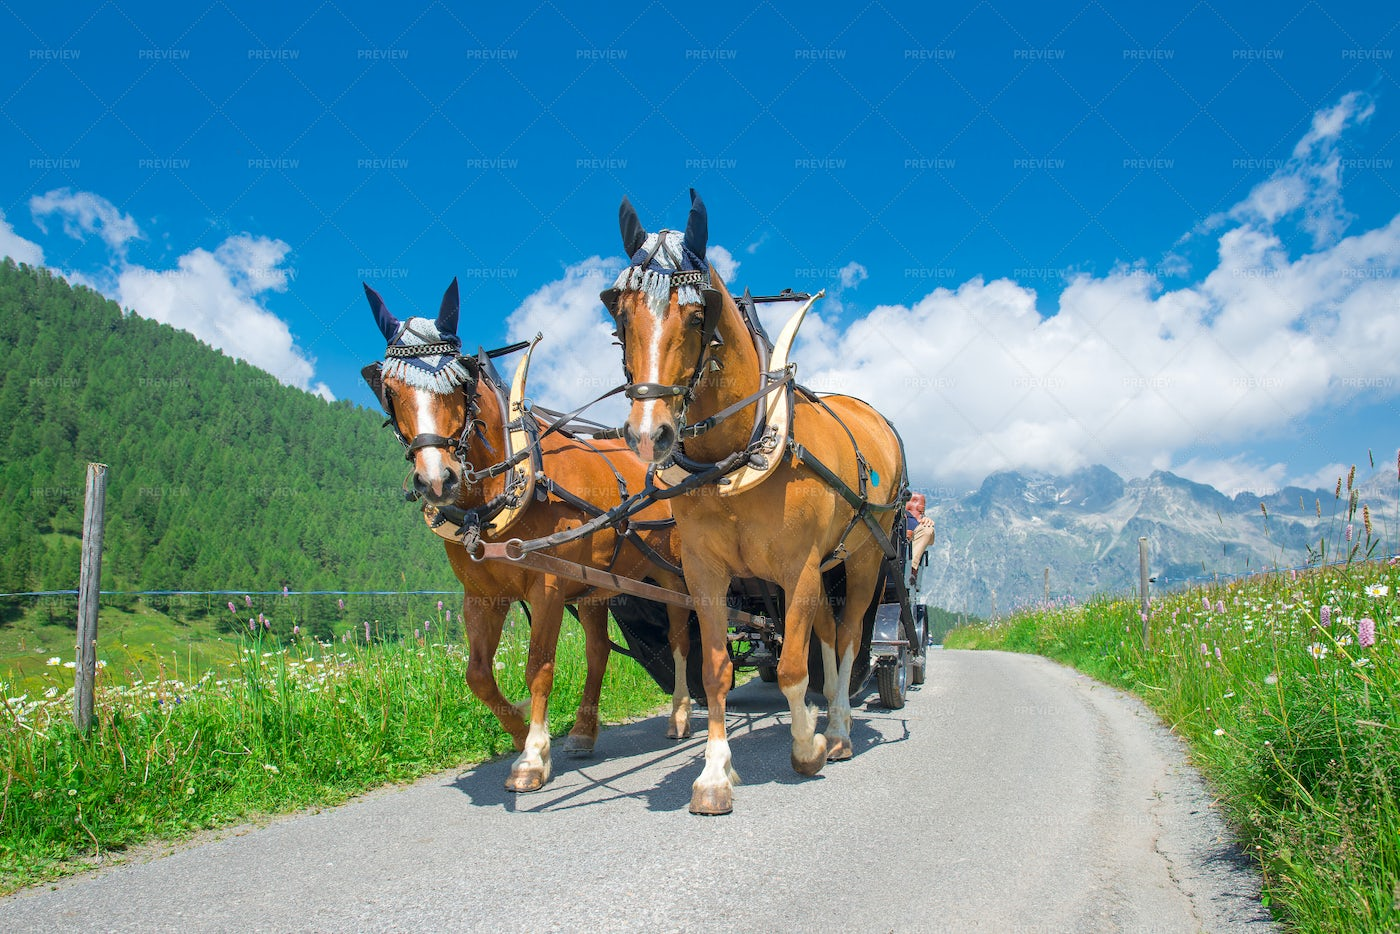 Horses Pulling A Carriage: Stock Photos